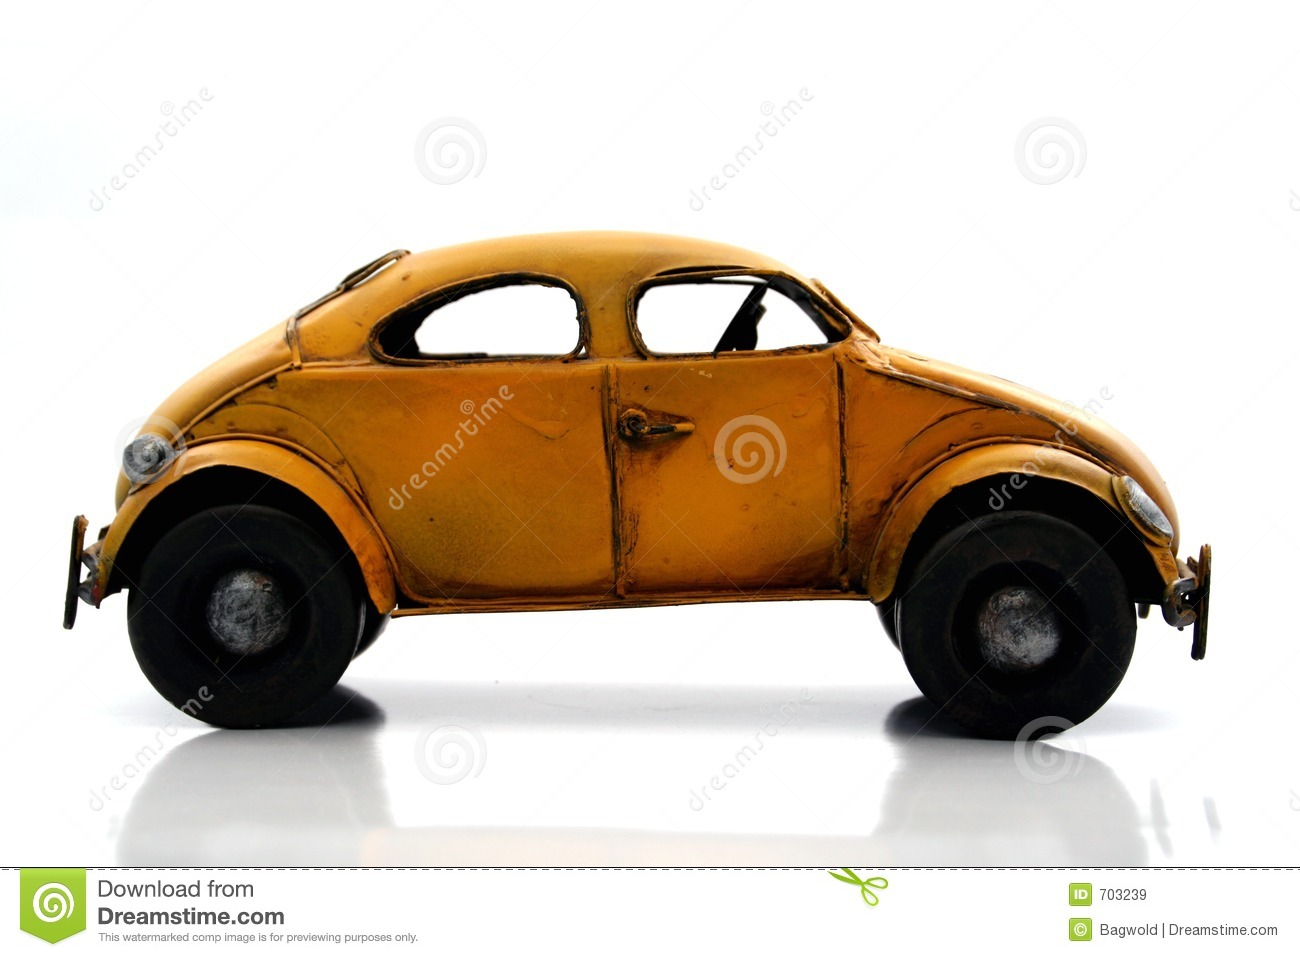 VW Bug Toy Royalty Free Stock Images - Image: 703239